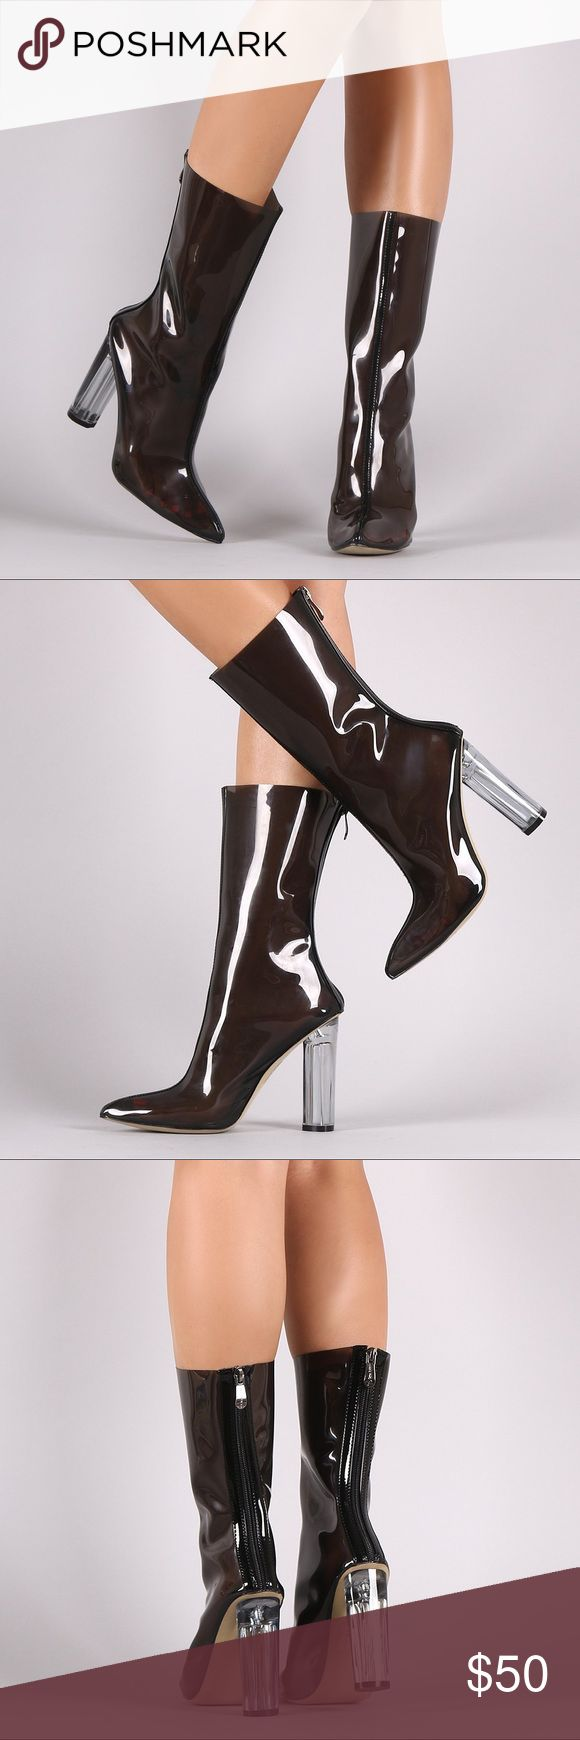 Heeled mid calf rain boots/fashion boots These trendy mid calf boots feature a sheer design upper with patent leather trim, center stitched details, pointy toe silhouette, and architectural clear round heel. Finished with cushioned insole and rear zipper closure for easy on/off.      Could even be worn as a stylish rain boot   Material: PVC/Vegan Patent Leather (man-made) Sole: Synthetic Shoes